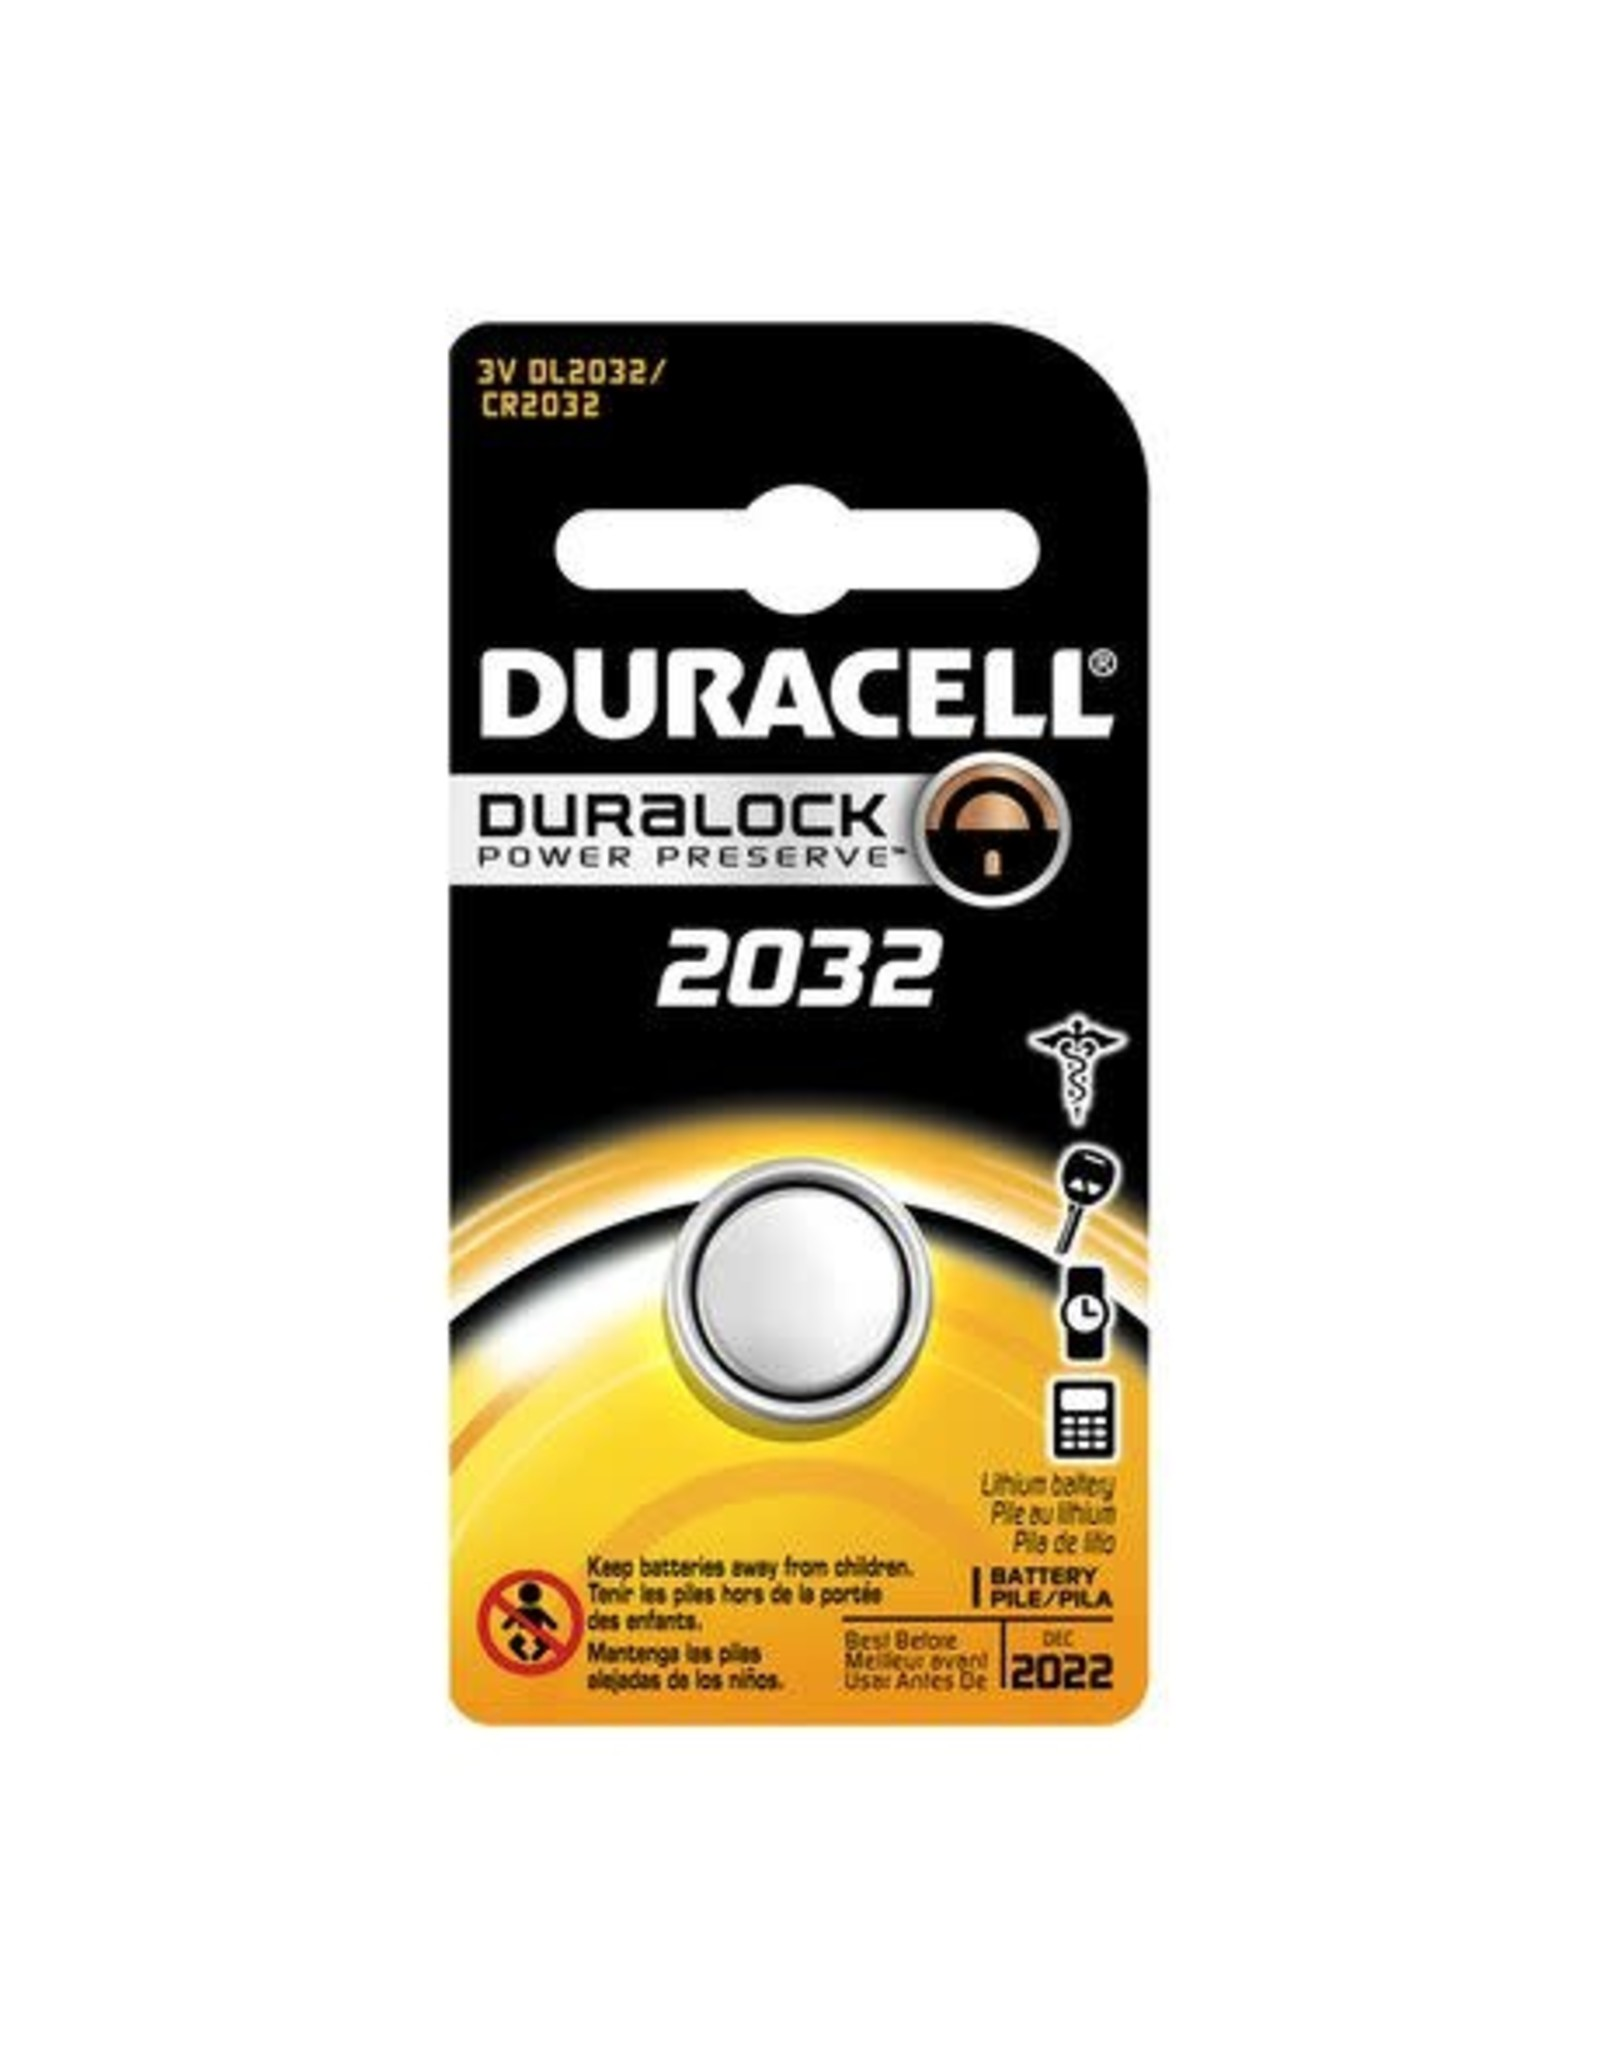 Duracell Duracell DL2032 3V Lithium Battery 1 Pack